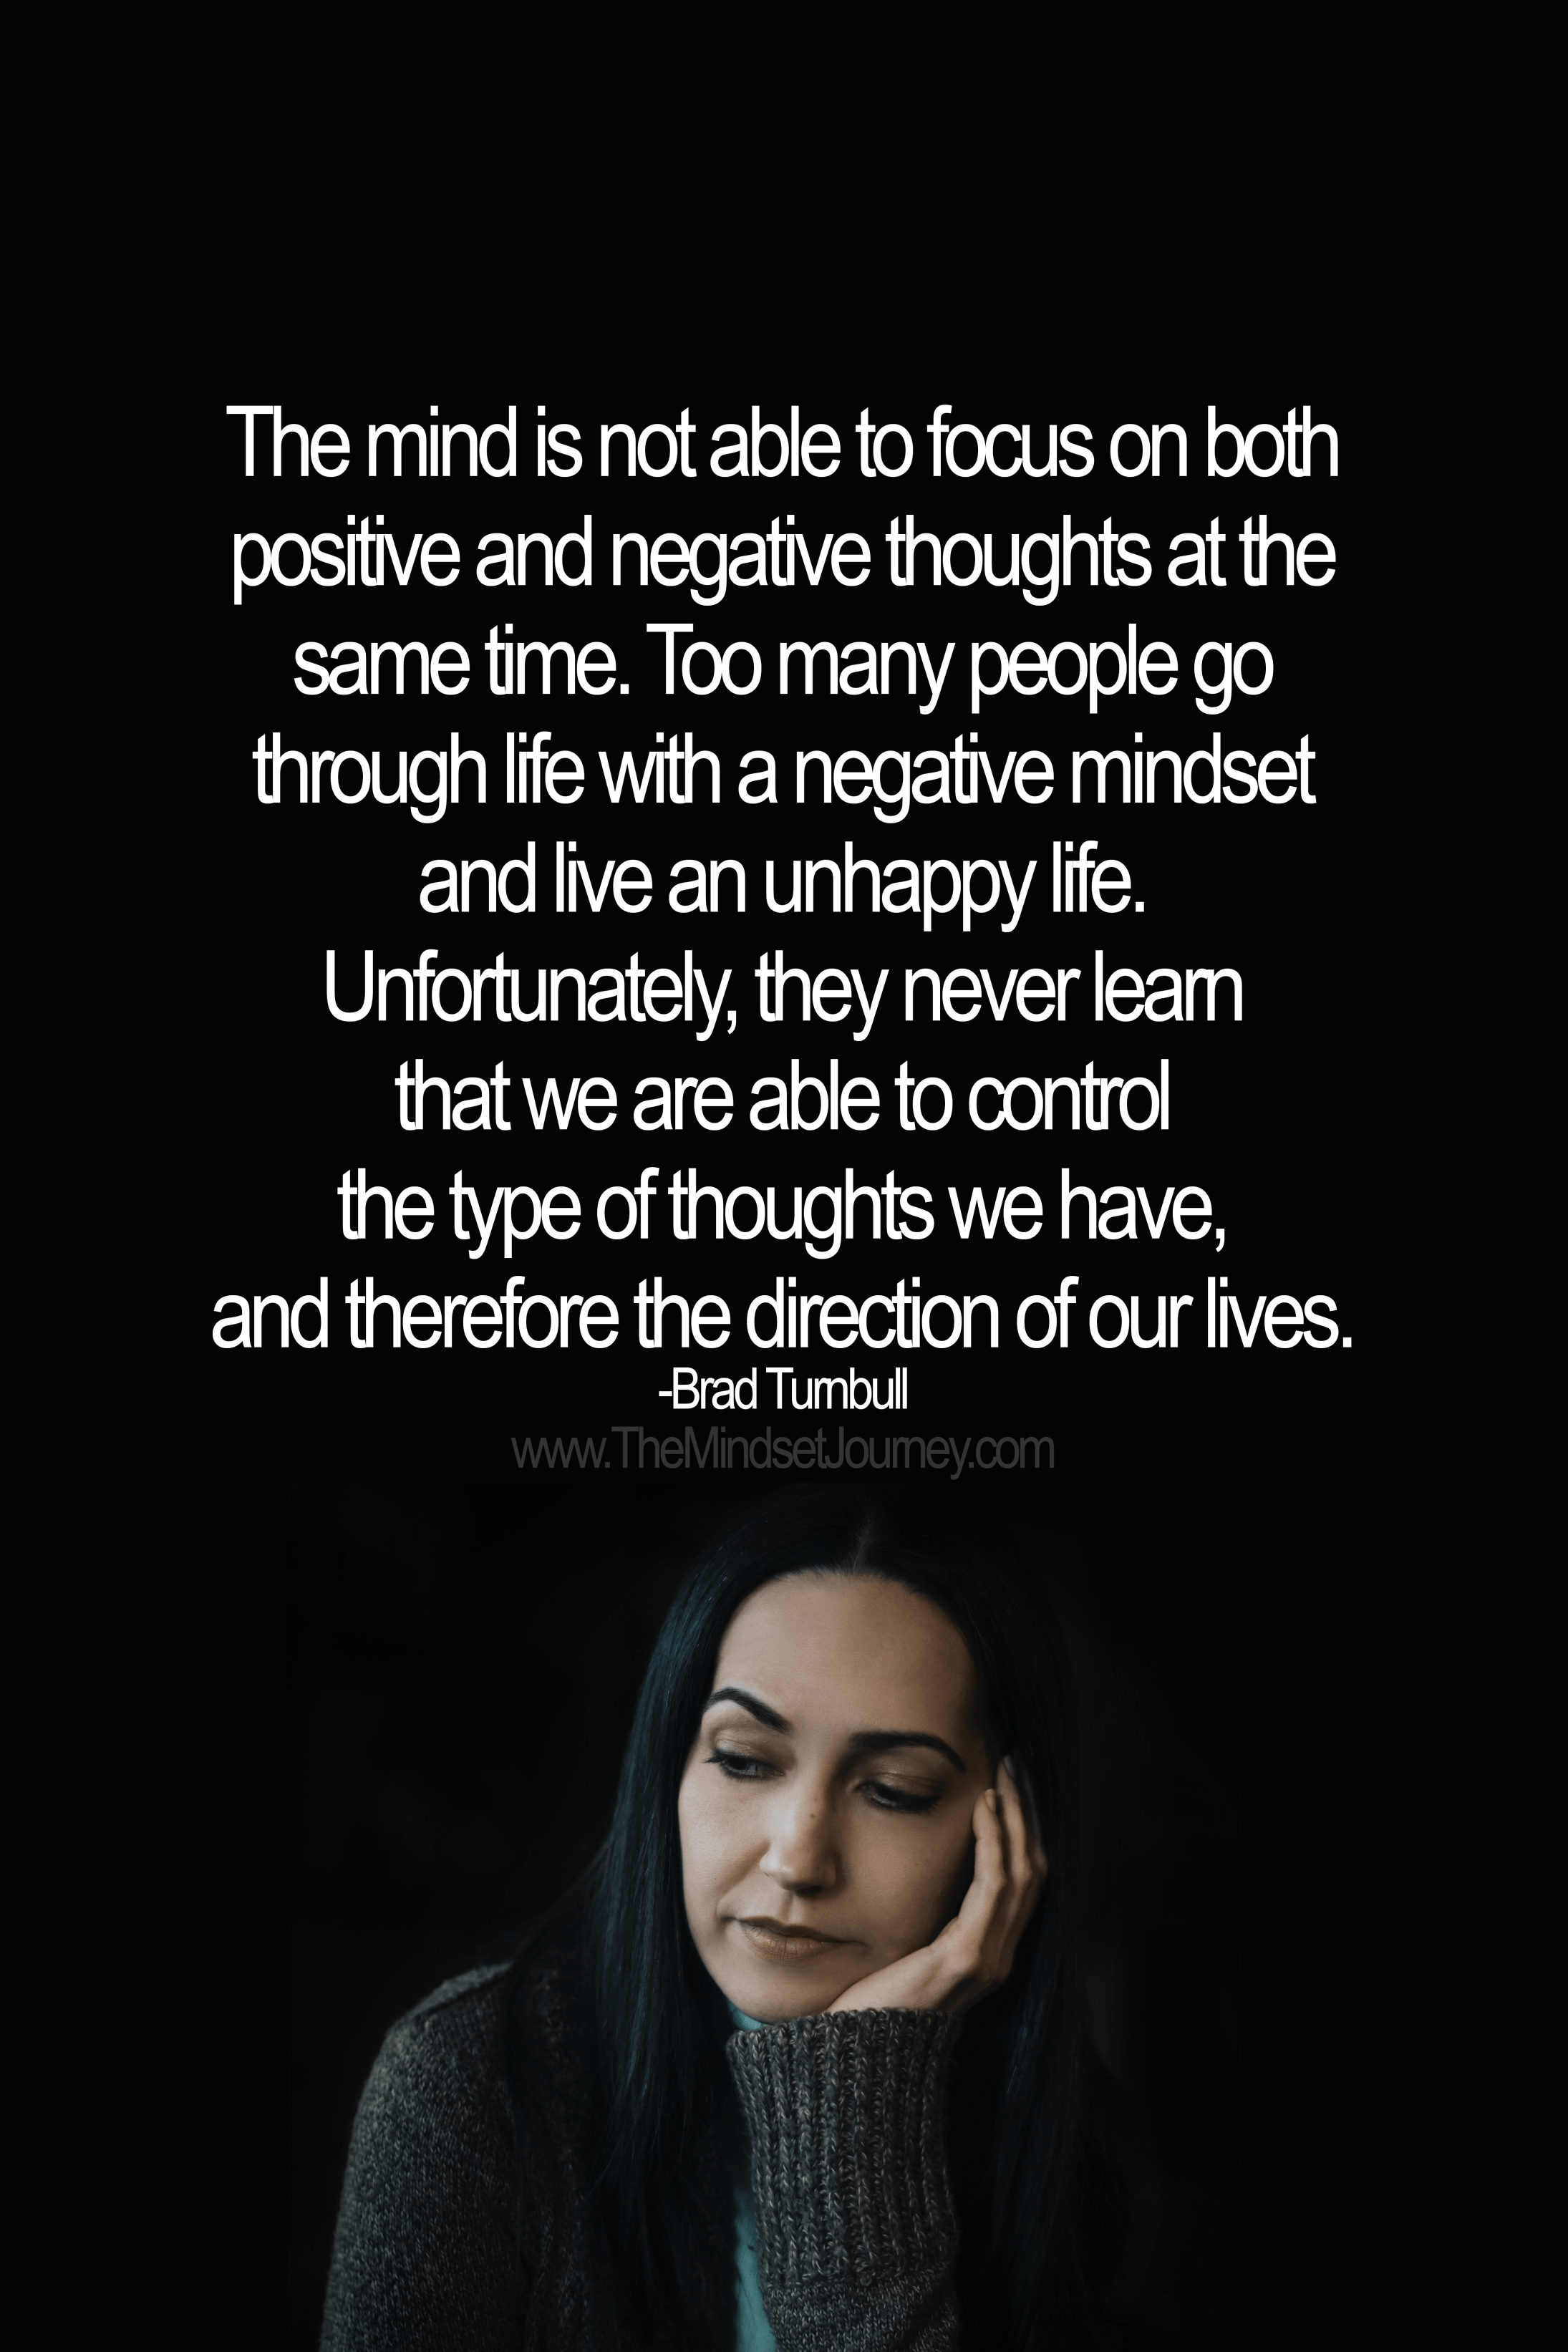 The Mind Is Not Able To Focus On Both Positive And